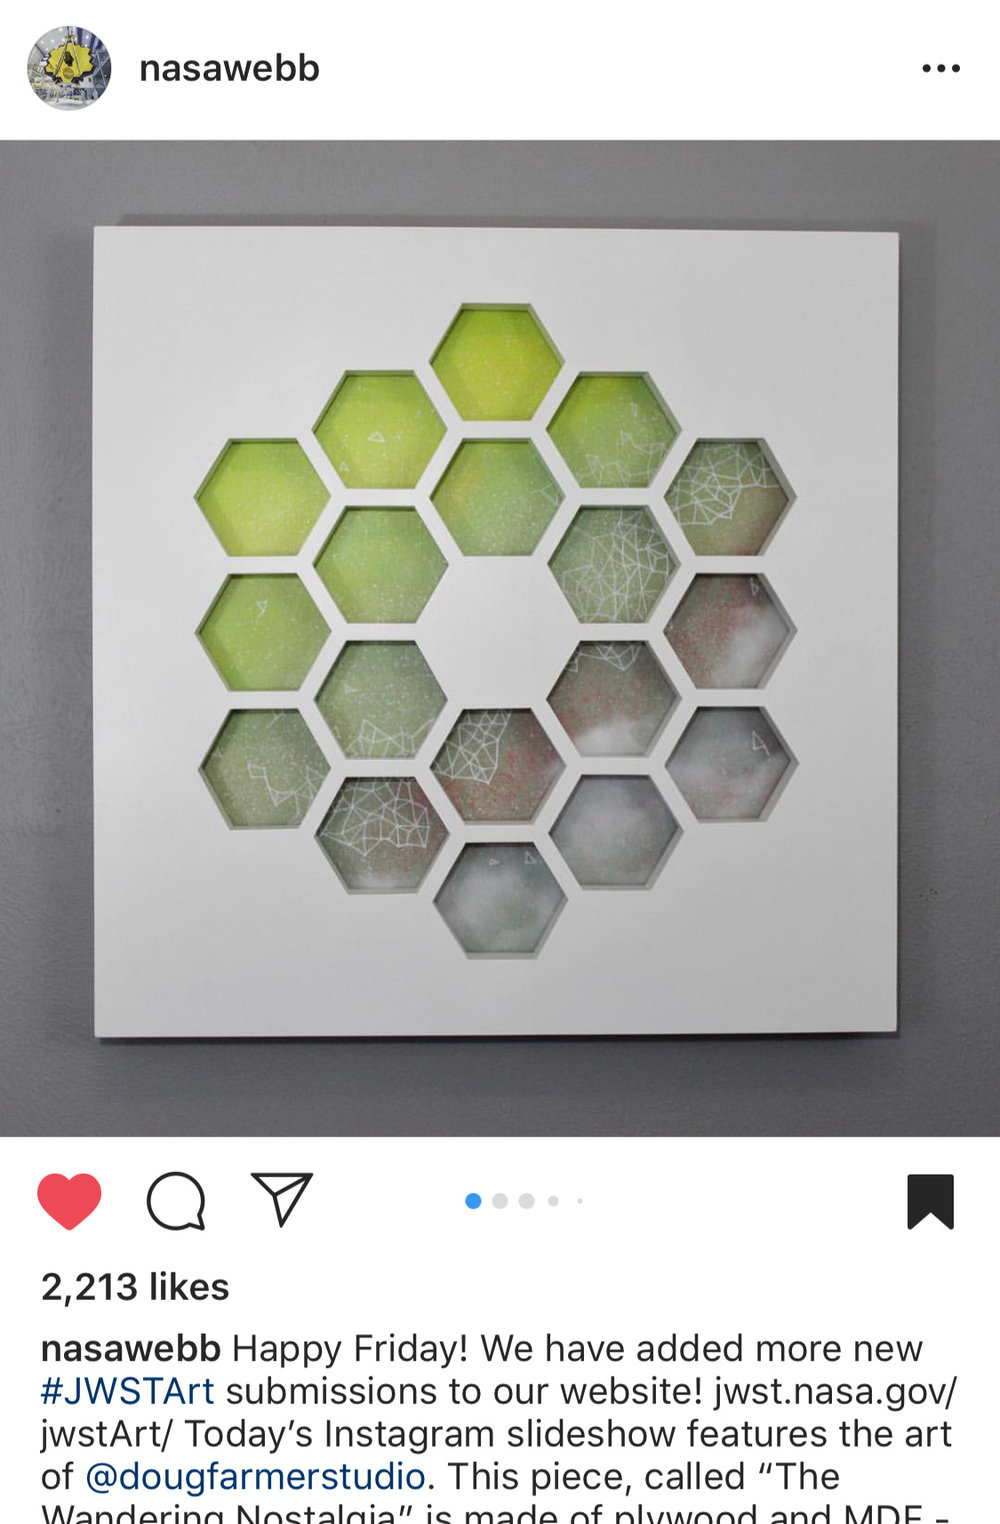 Feature post from @nasawebb, the Instagram account for the James Webb Space Telescope